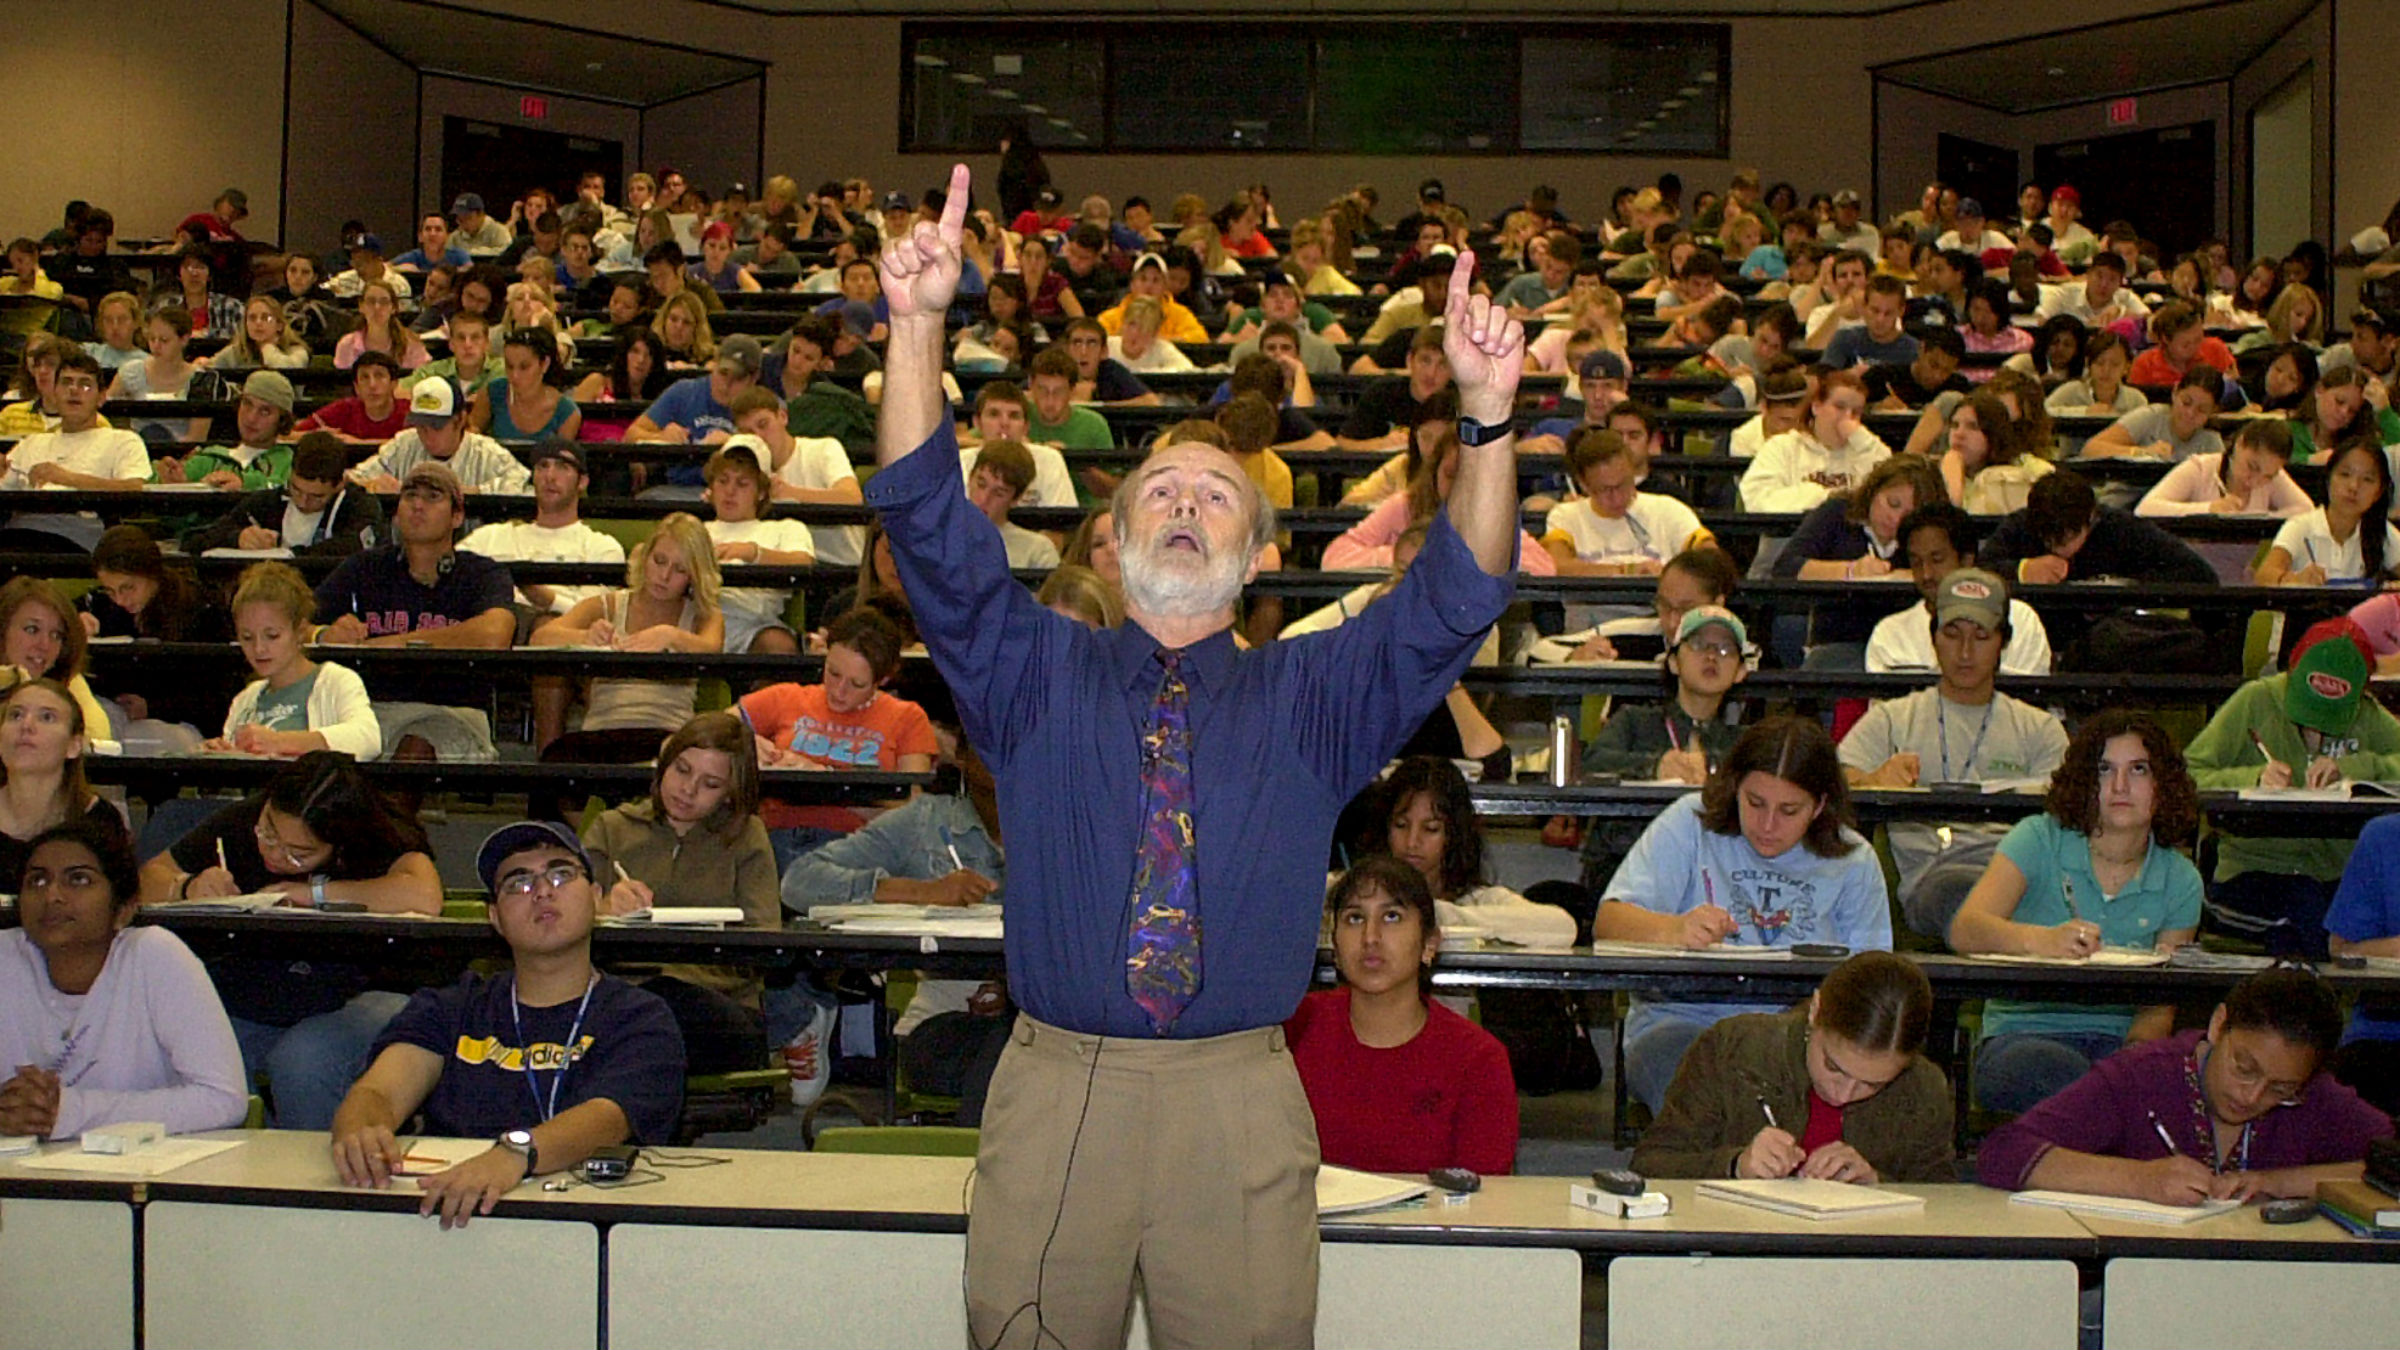 Professor lecturing in college lecture hall